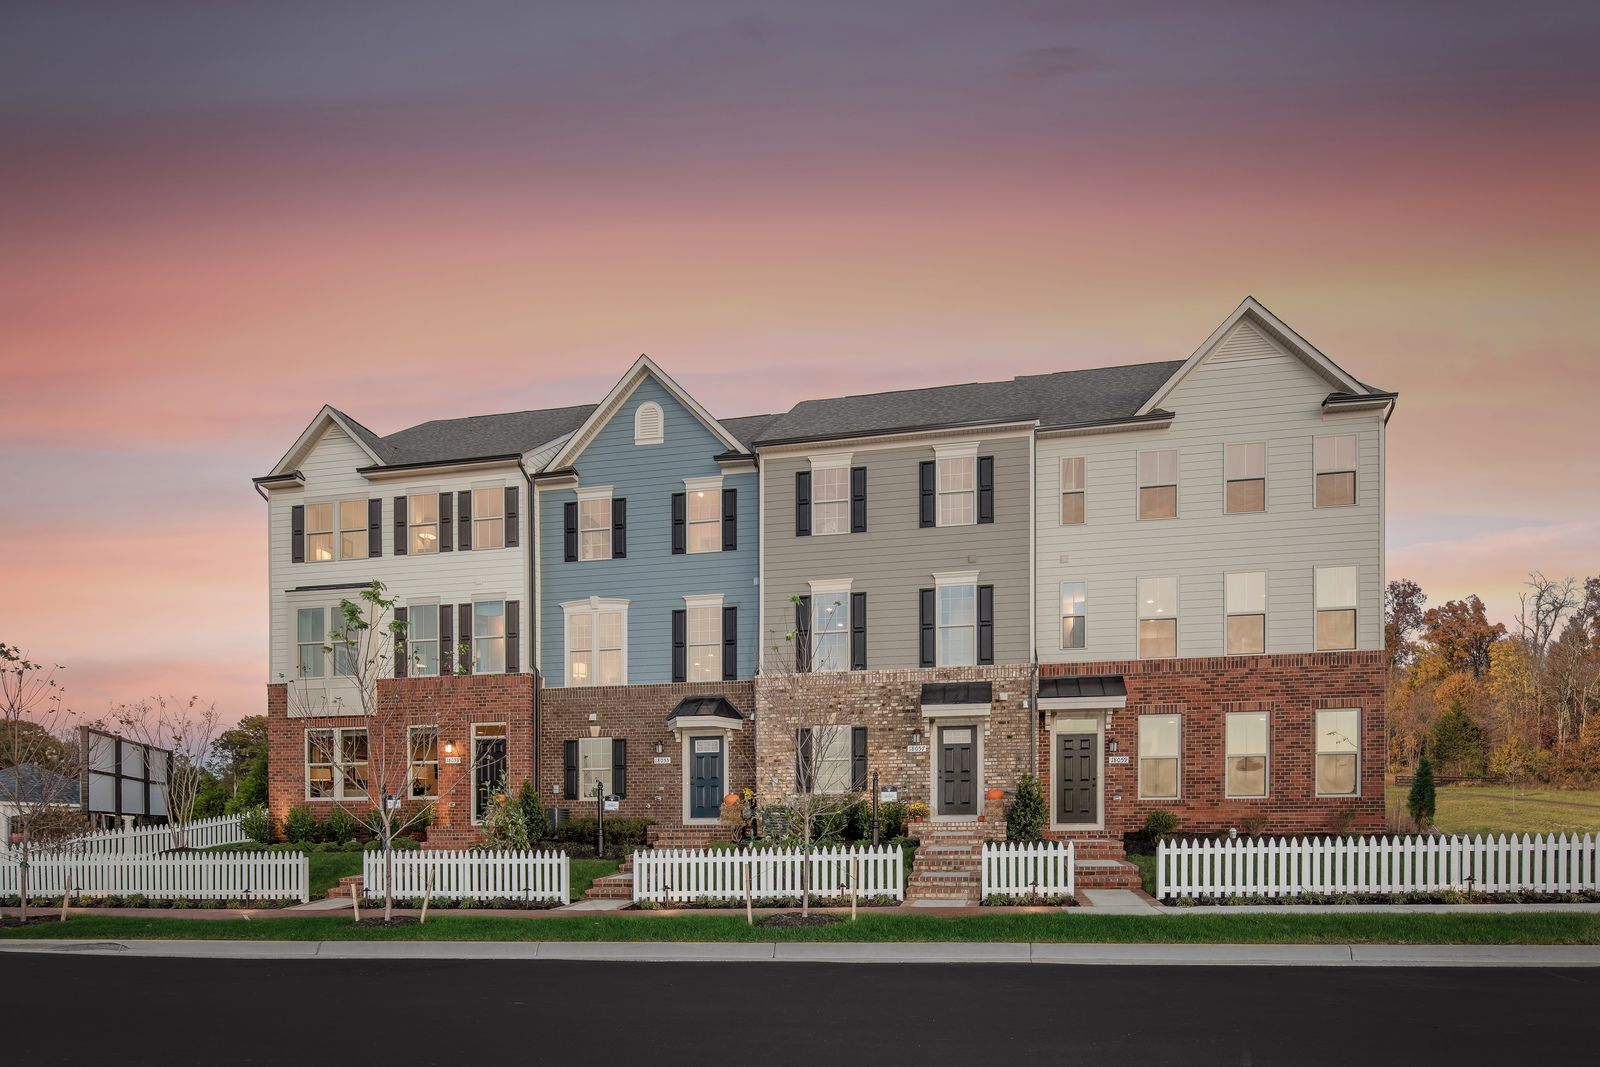 WELCOME TO POTOMAC SHORES TOWNHOMES